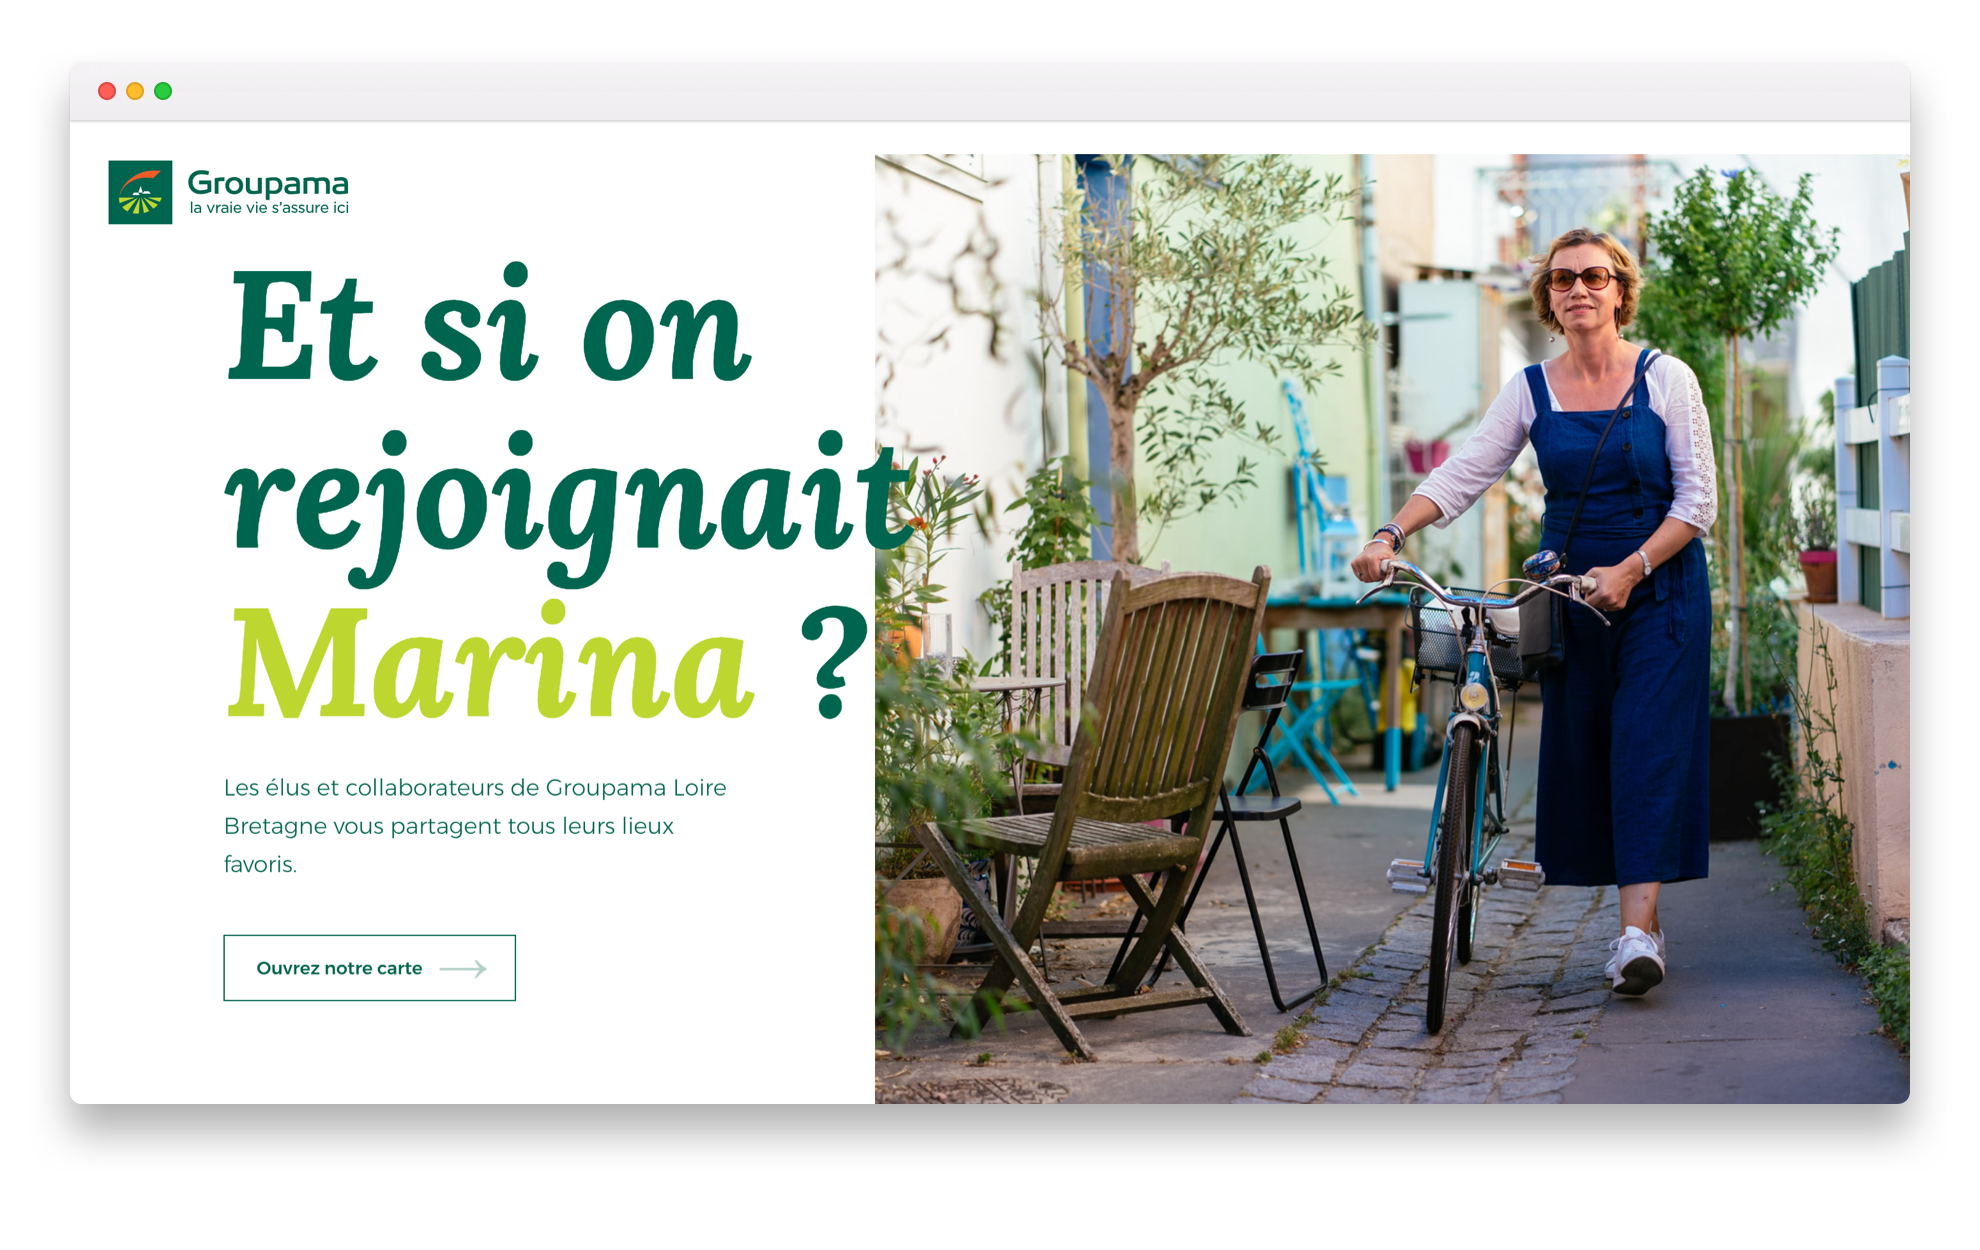 Groupama, carte blanche - Page d'accueil